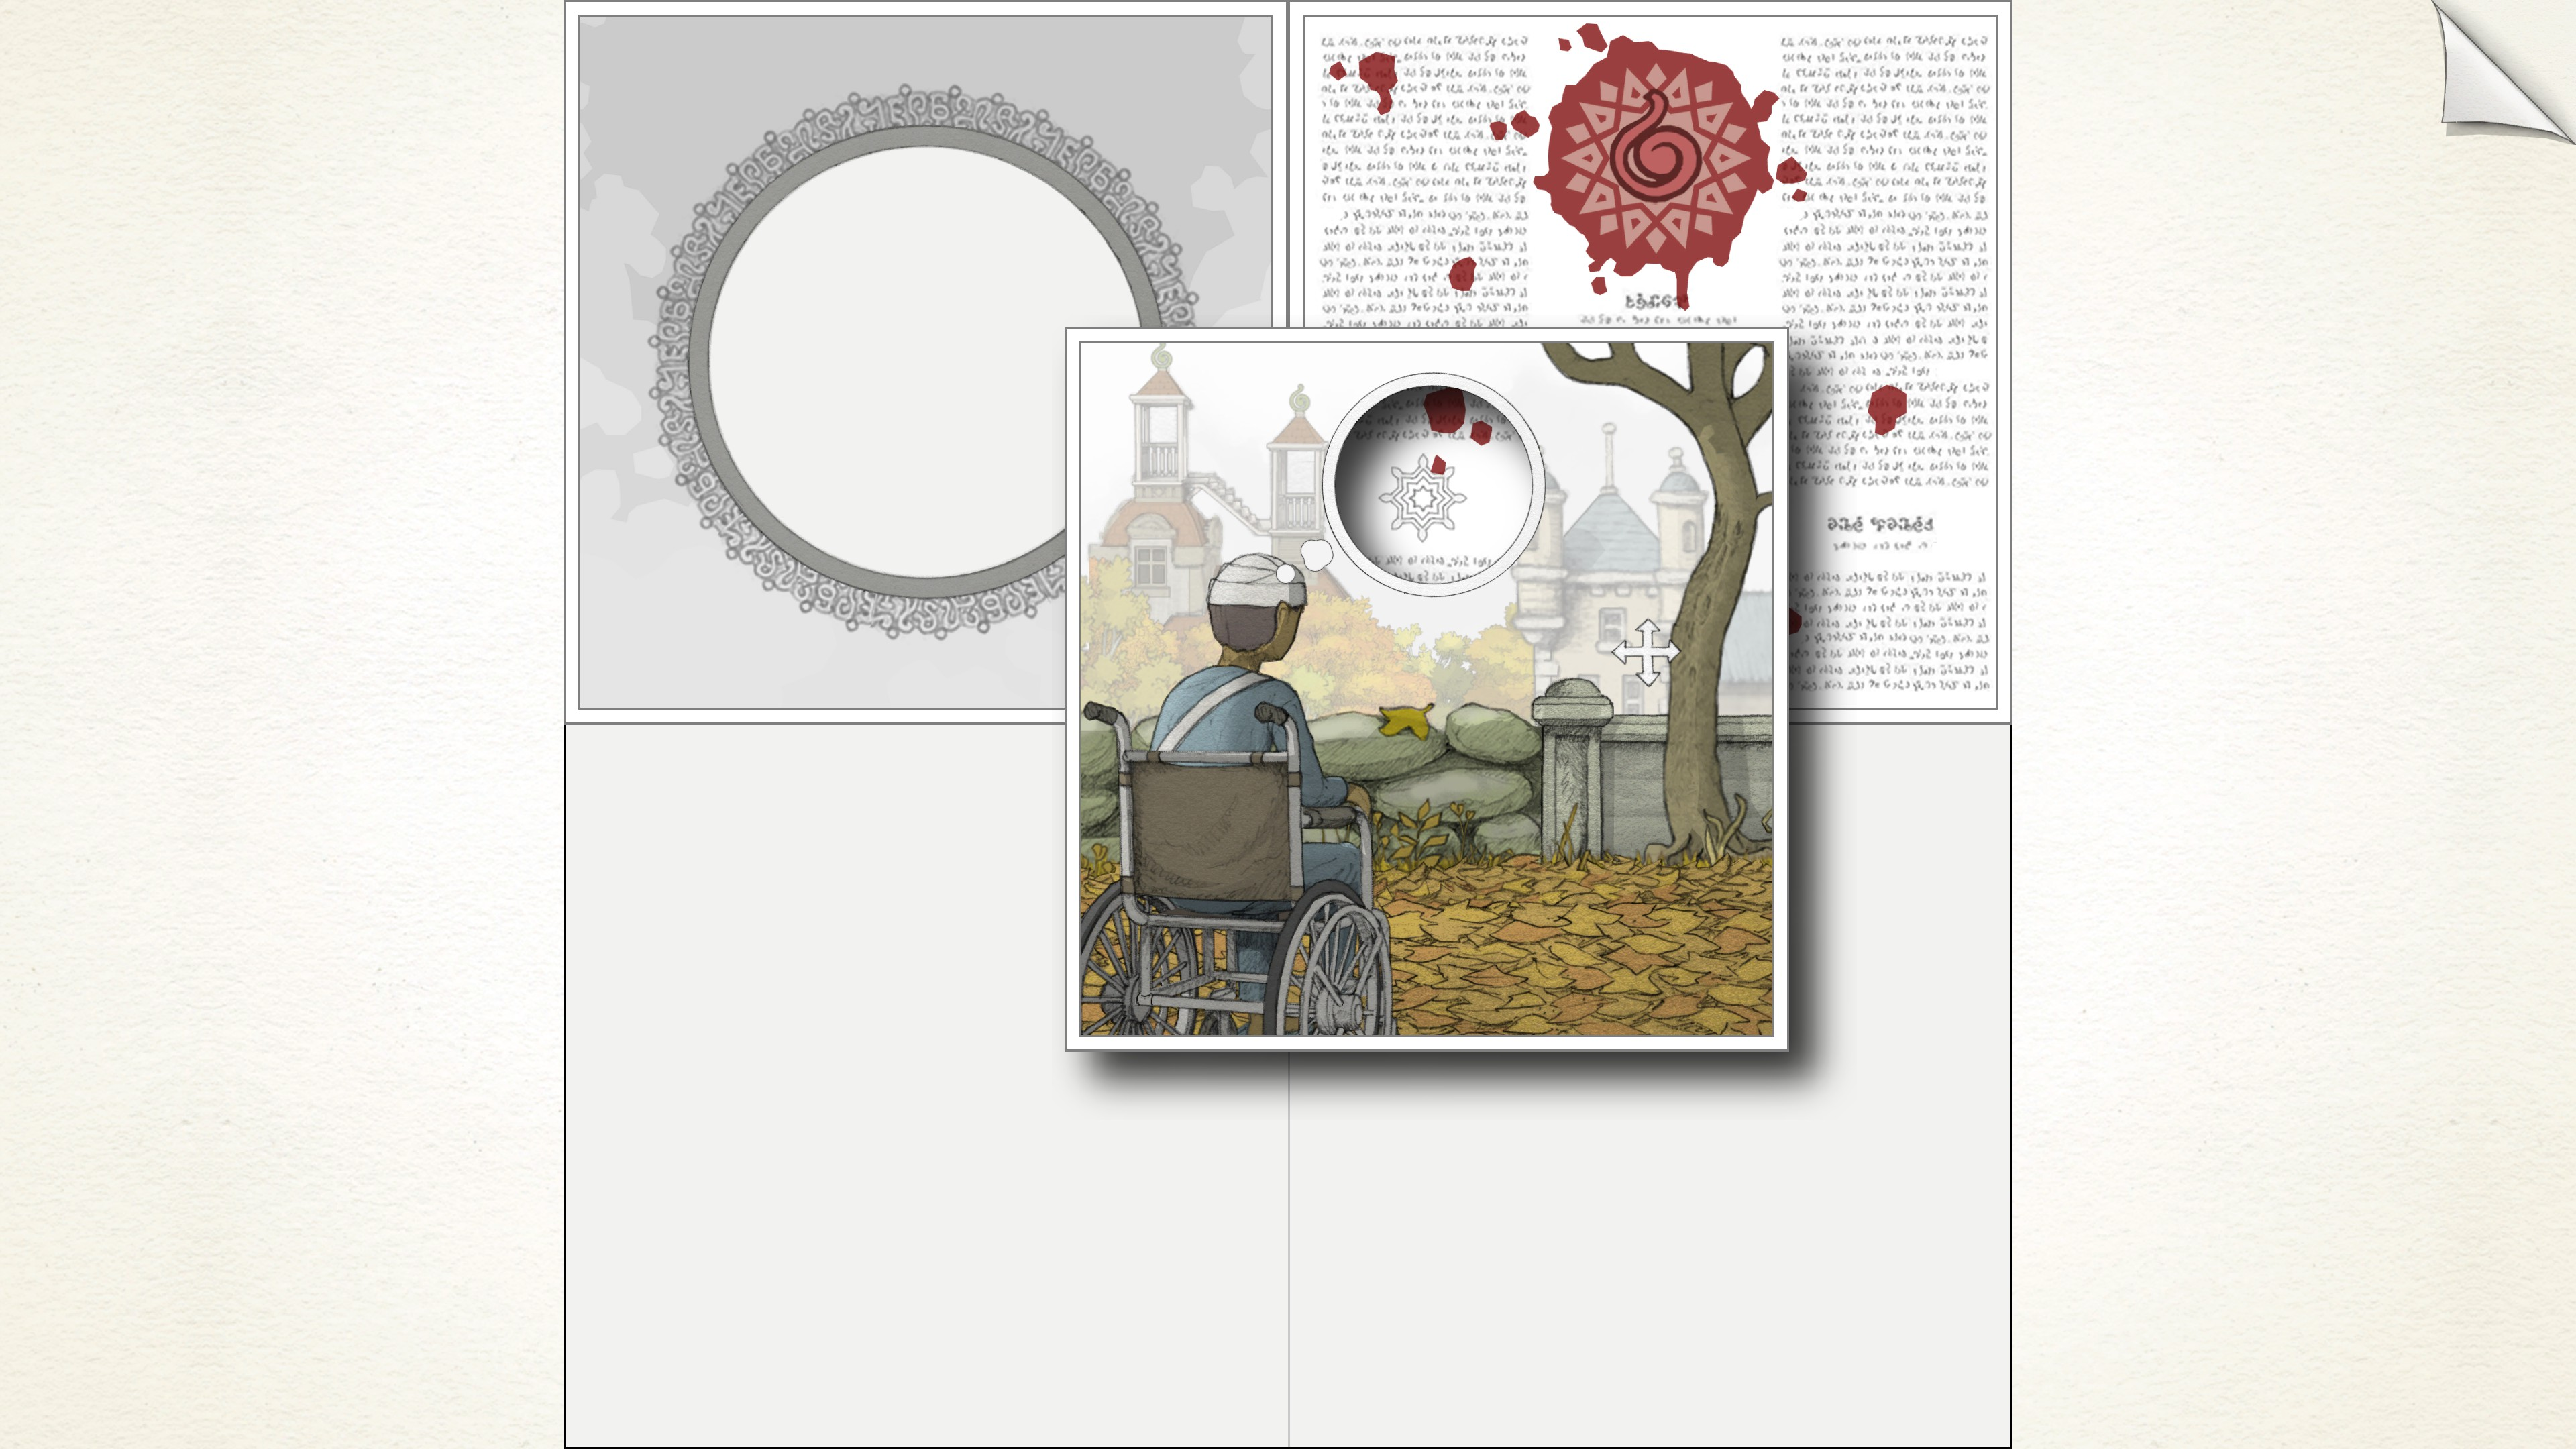 top left, grey circular photo frame. top right, passage of text with a bloody red symbol at the top. center, one scene is being lifted up and dragged atop the others. It's a scene of a young man injured and in a wheel chair. His thought bubble is empty and the other scenes can be viewed through the hole. If lined up over the top right image, the bloody symbol would perfectly fit in his thought bubble.